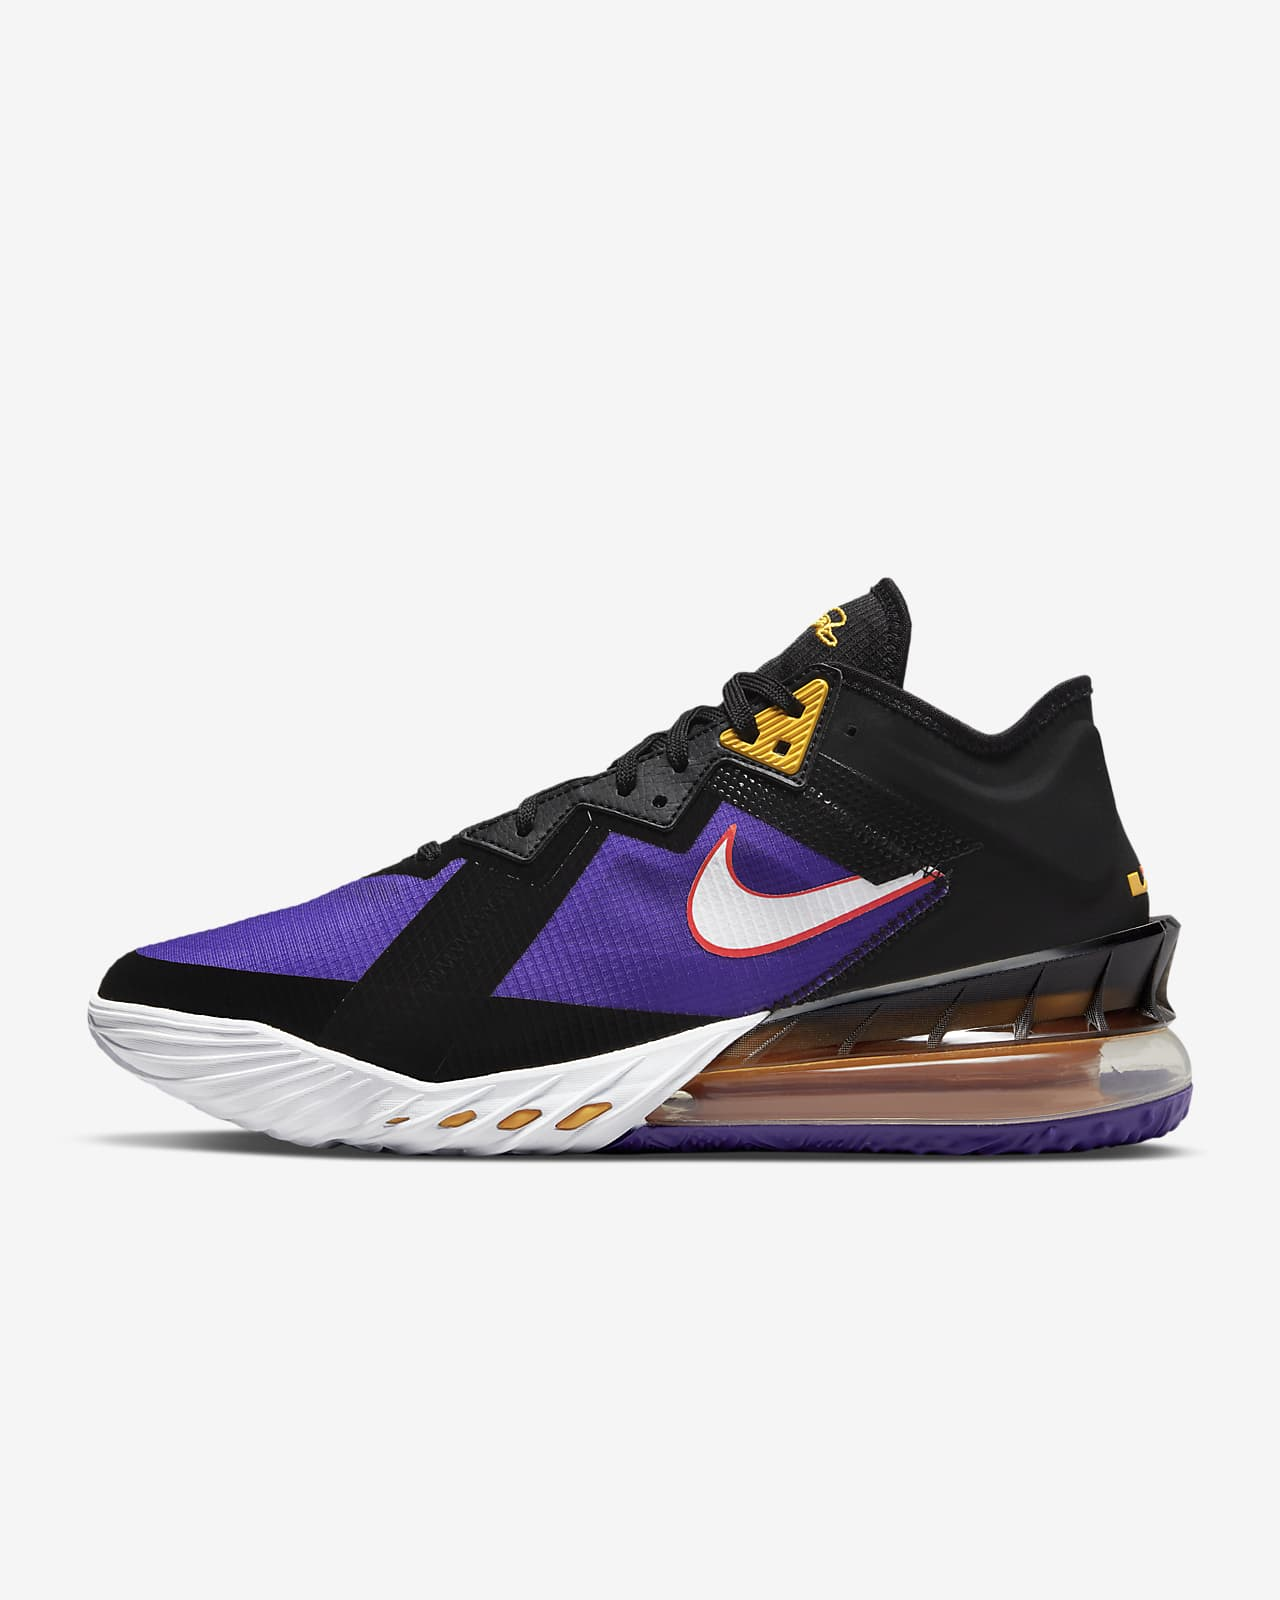 LeBron 18 Low Basketball Shoe